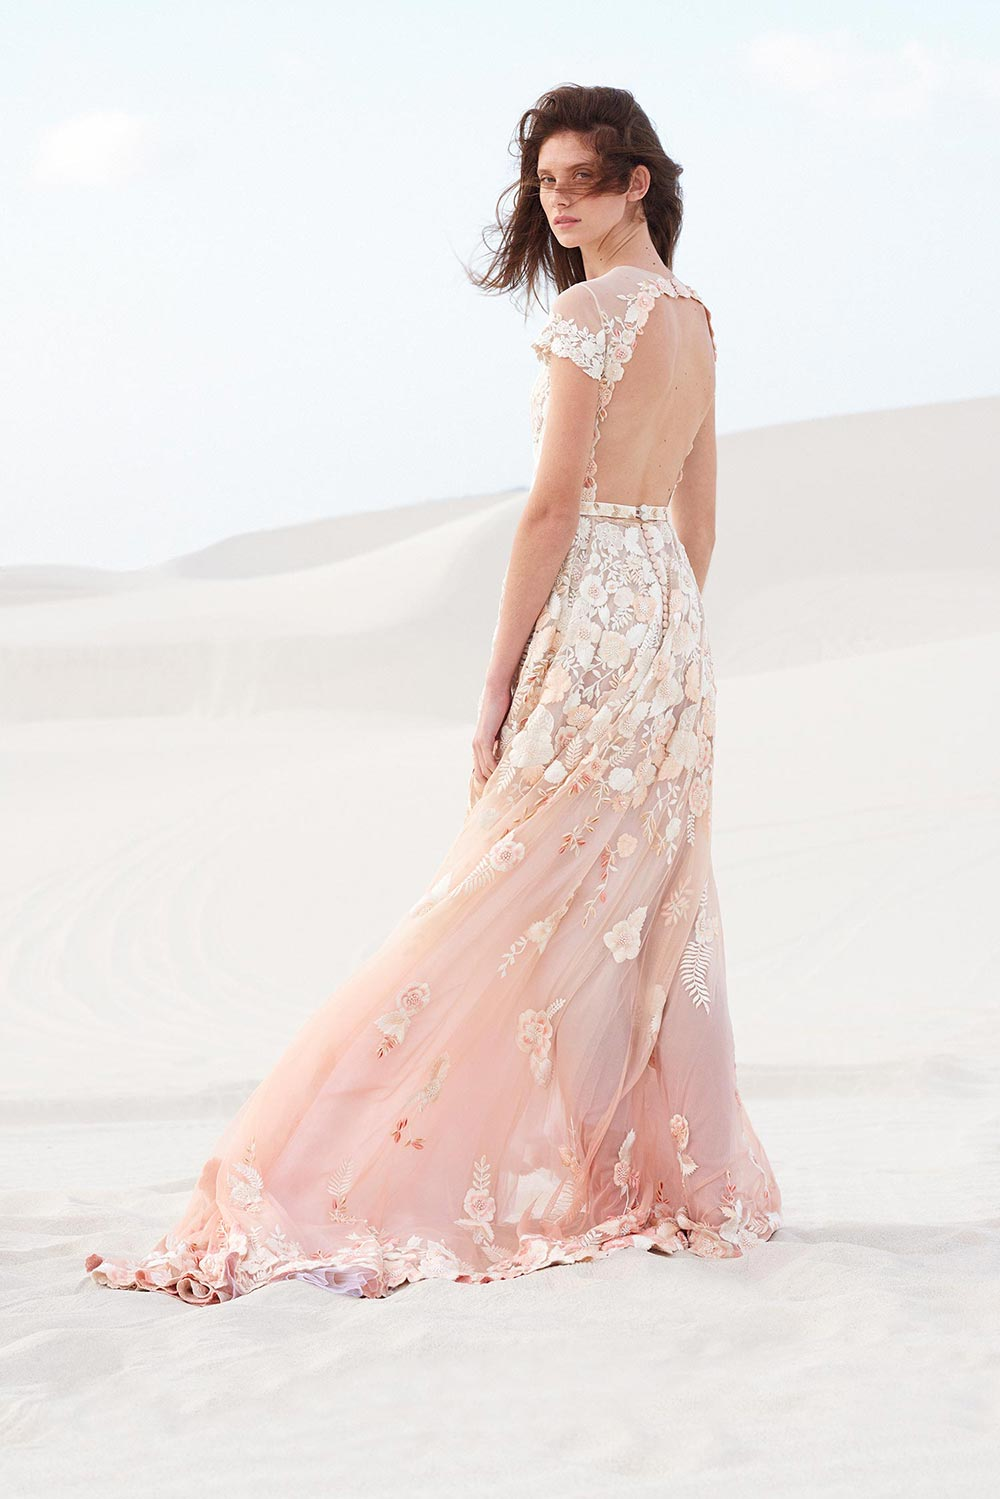 blush backless wedding dress with white floral appliqués